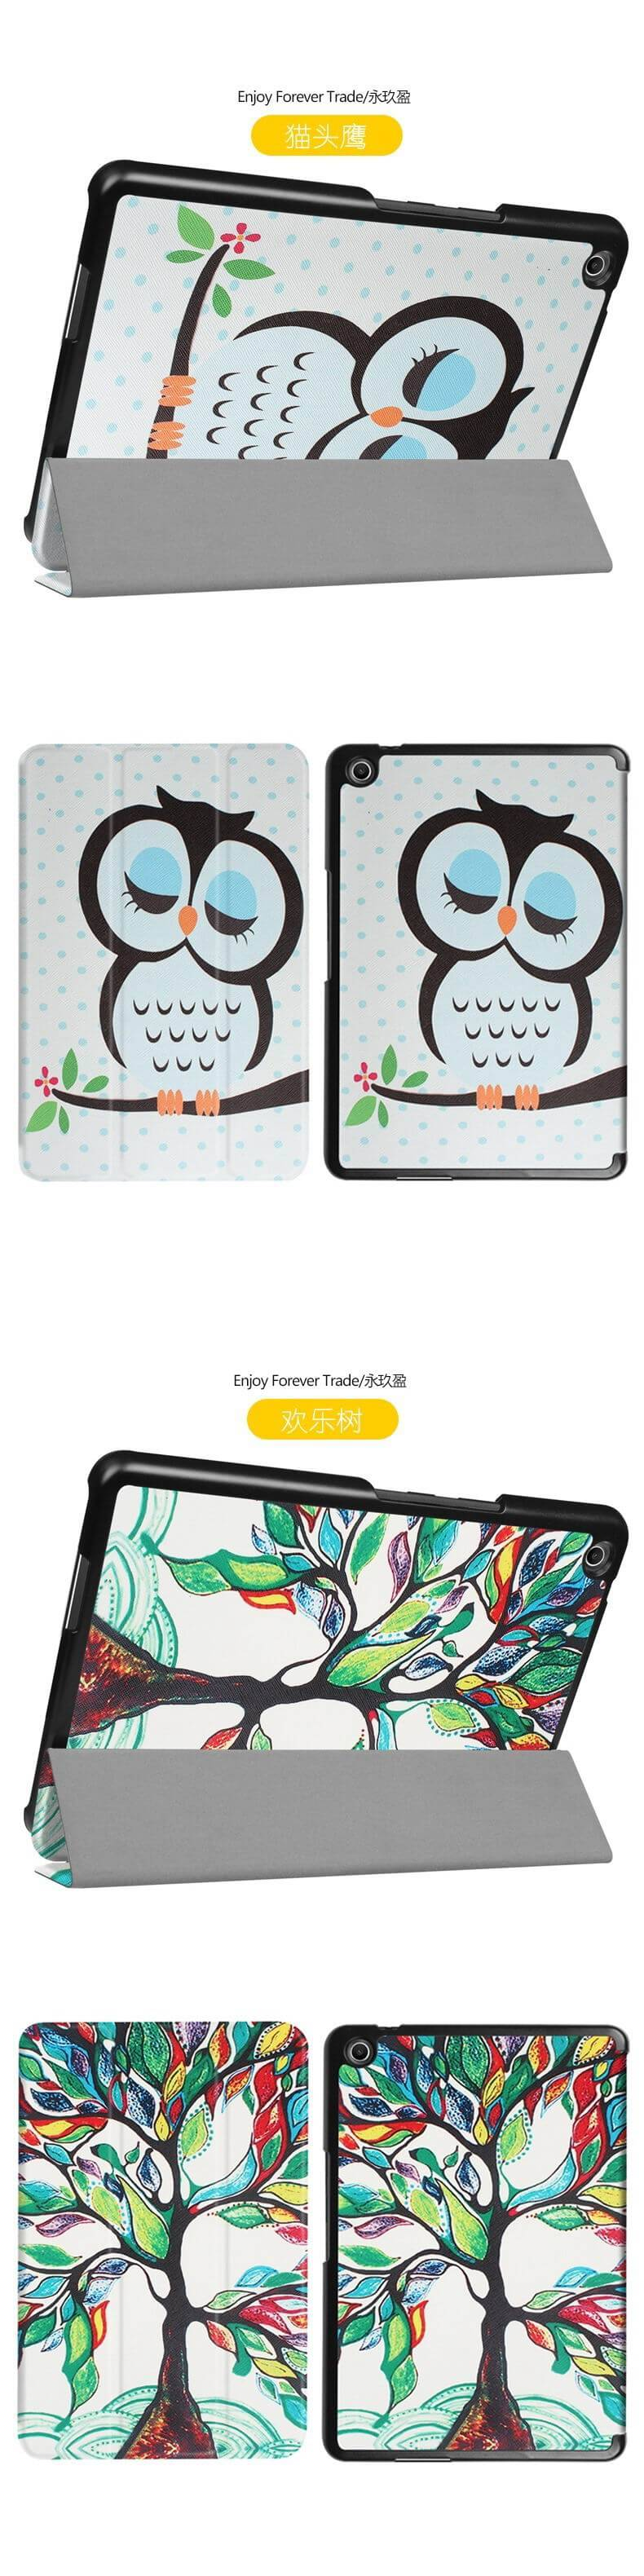 zenpad 3 80 z581kl case with different style patterns and 3 stand